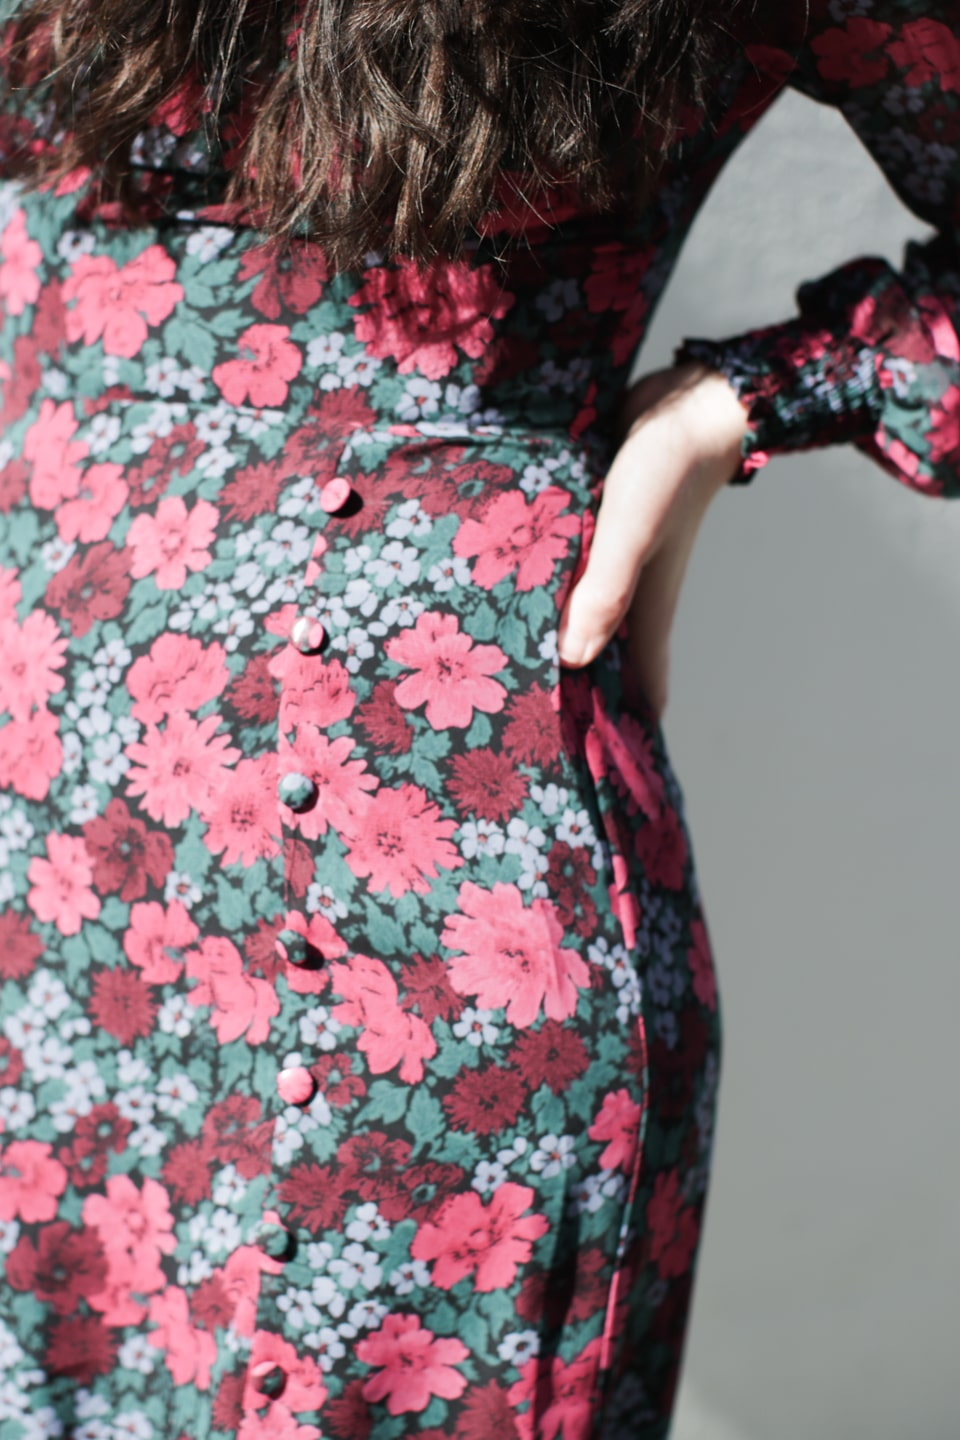 Close-up of detailing on dress